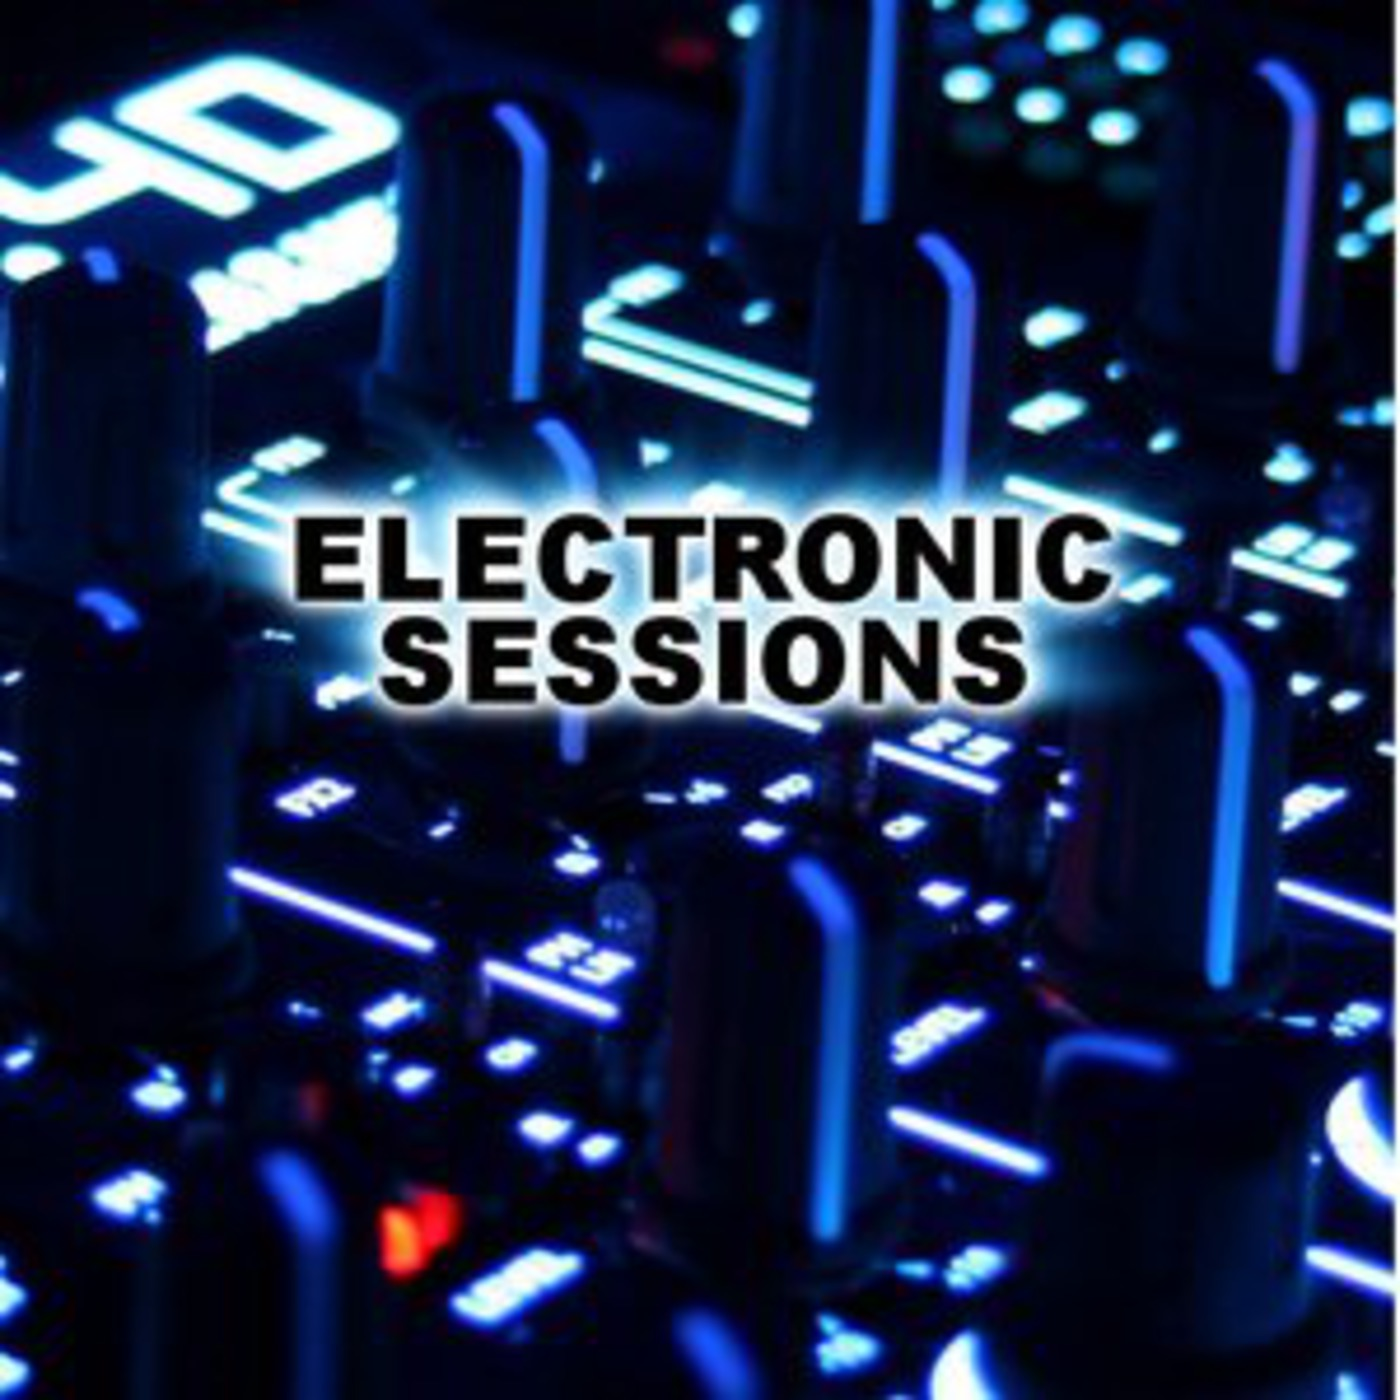 Electronic Sessions (KE)